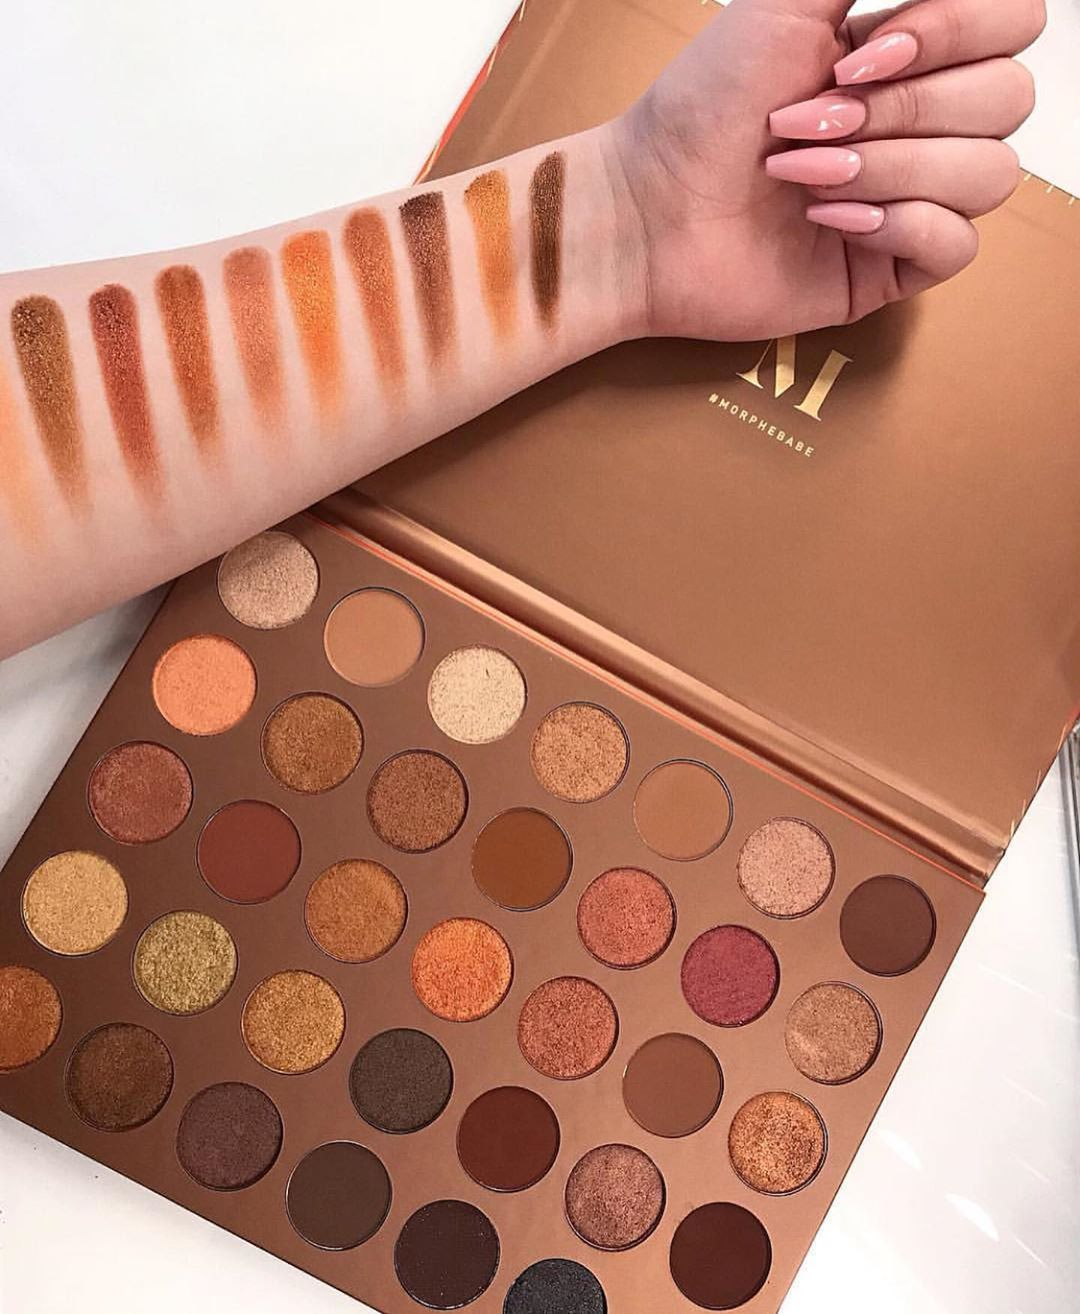 35g Eyeshadow Palette By Morphe لوحة ظلال الجفون بألوان ذهبية و ترابية من مورفي Benefitcosmetics Makeup Beauty Usa Morocco Travel Shoppingonline